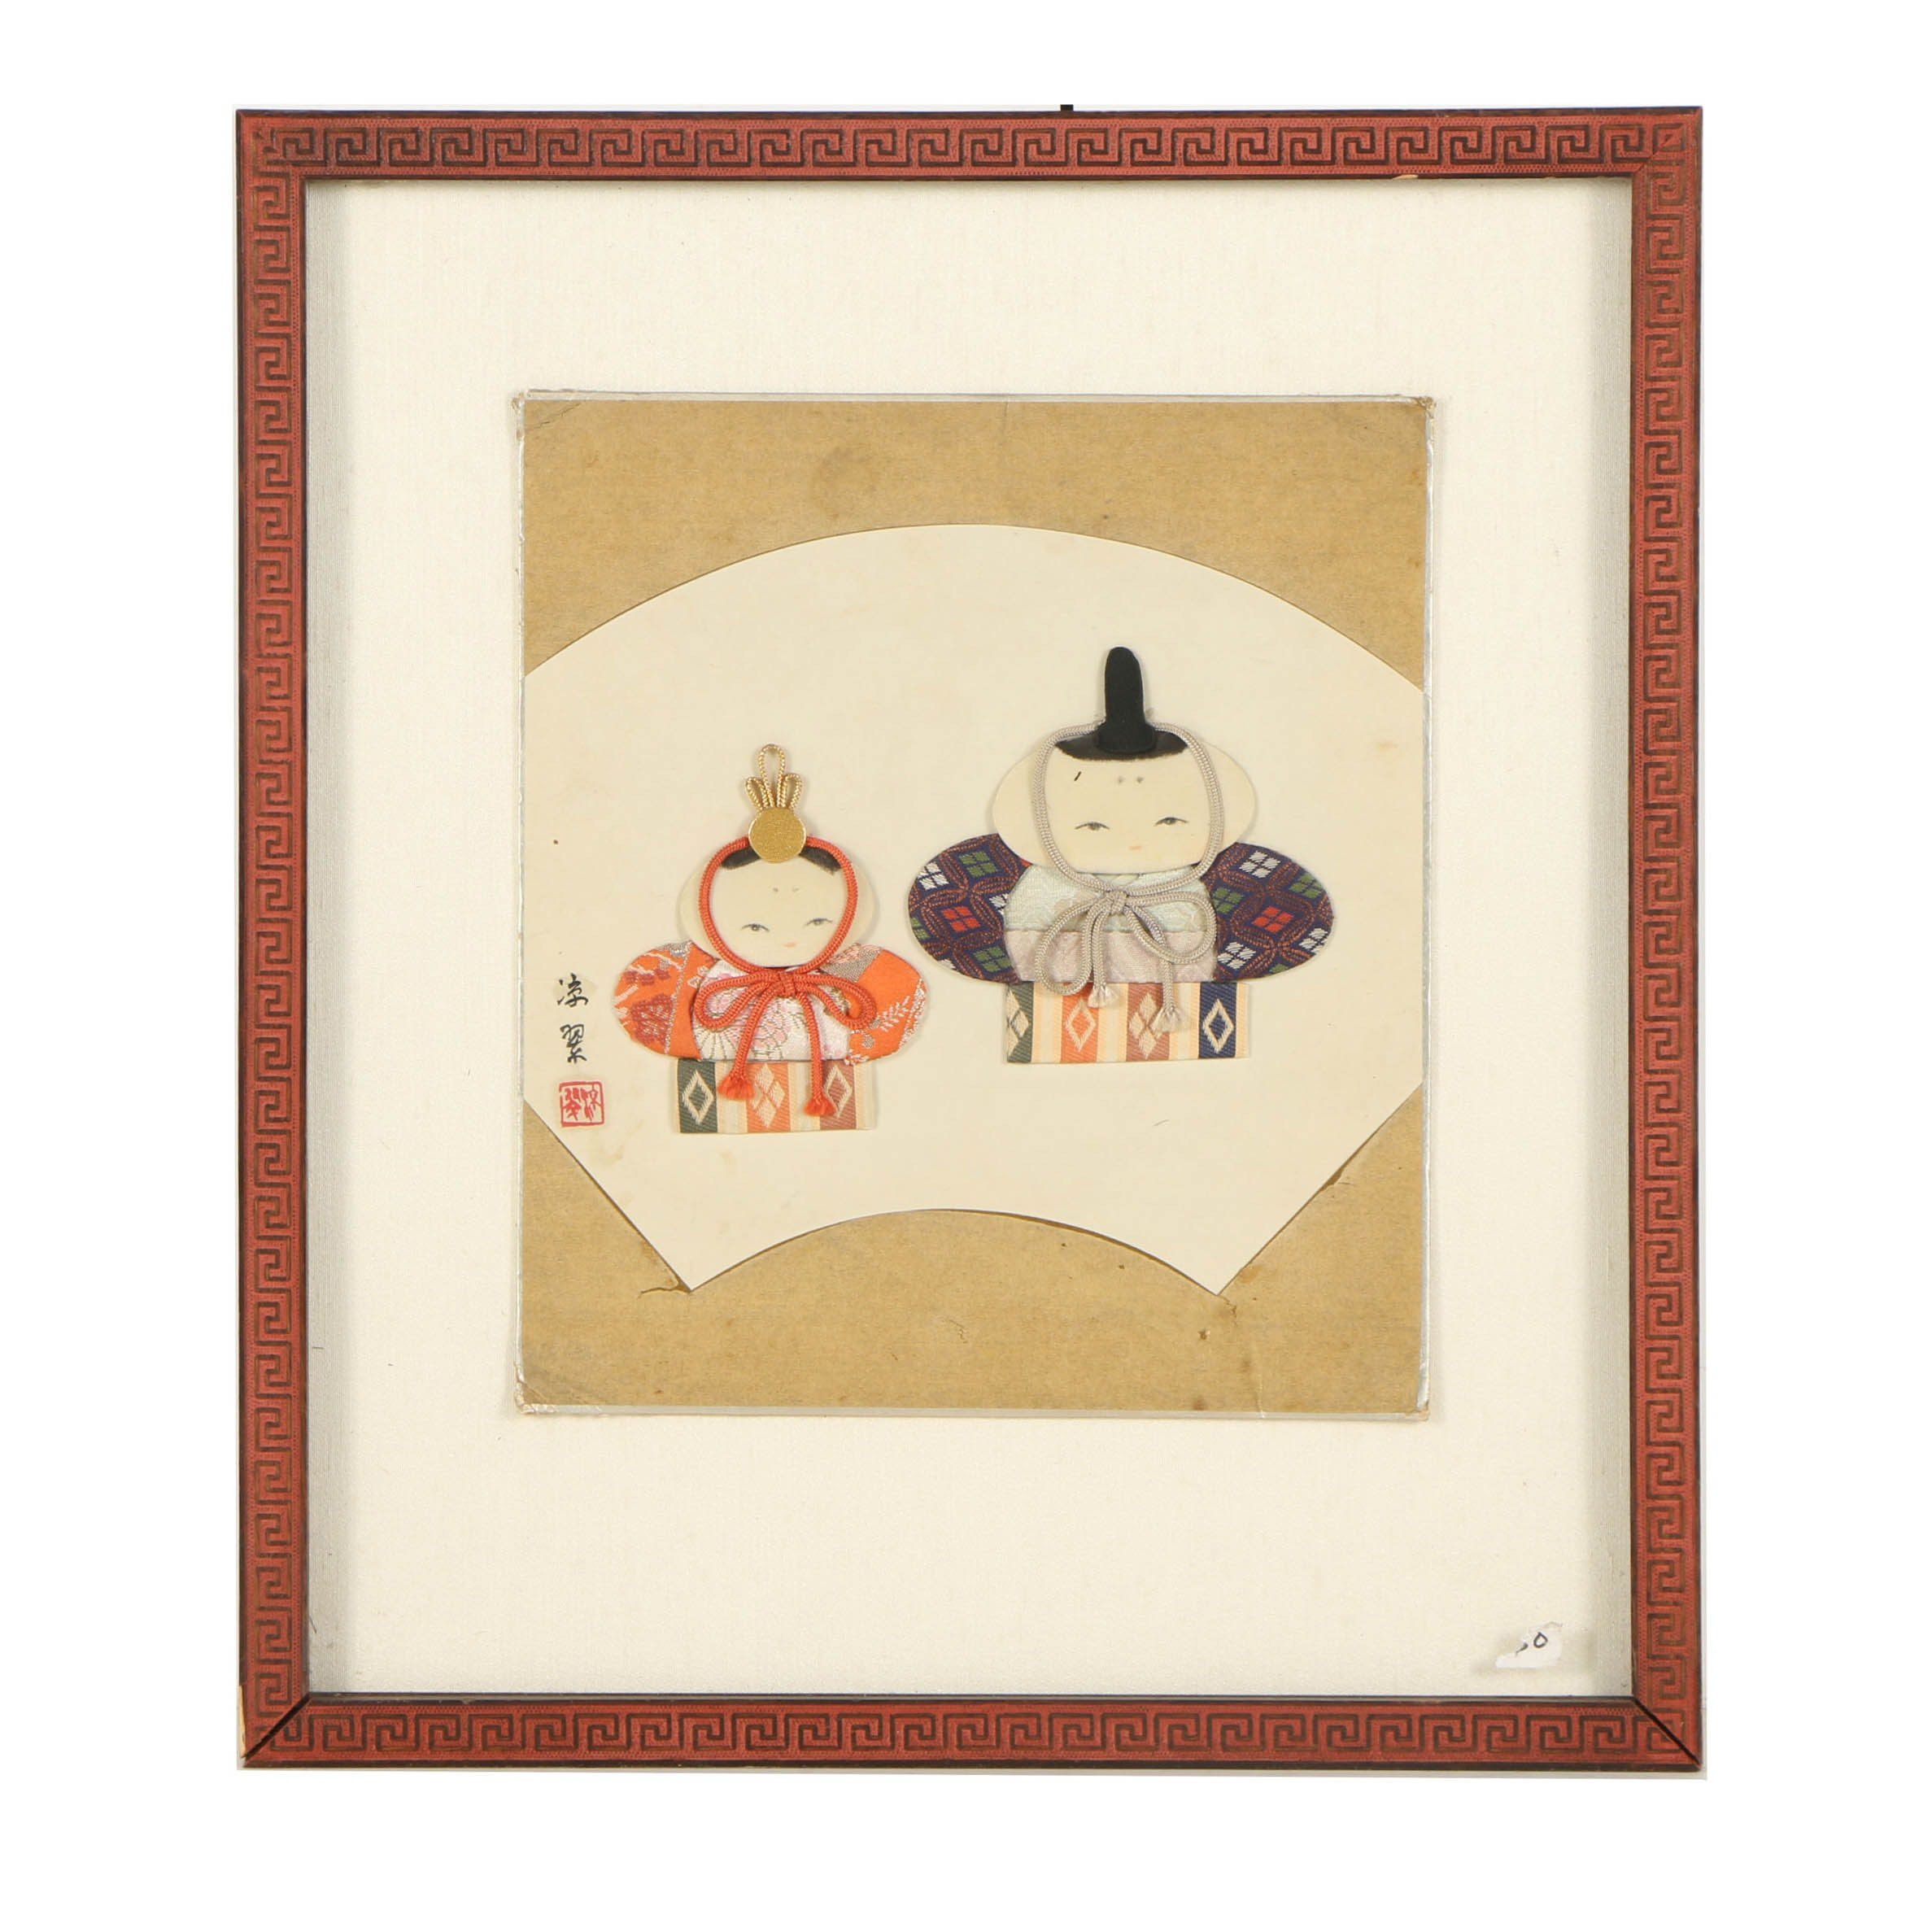 Japanese Fabric Collage on Paper of Figures